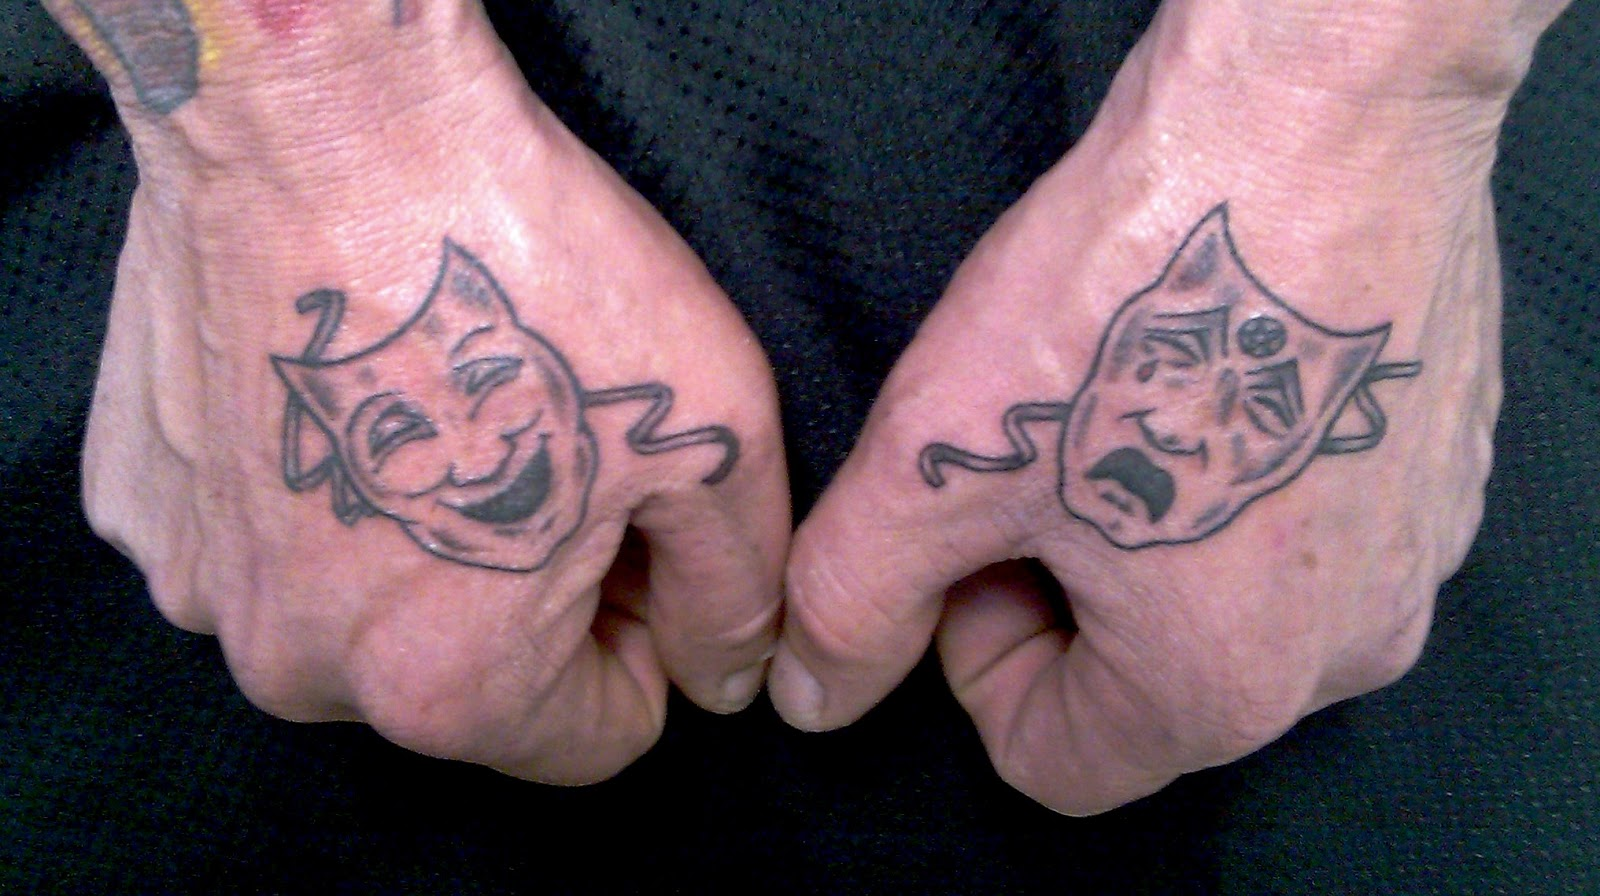 Tattoo Black And Grey Motley Crue Theatre Of Pain Masks On Hands